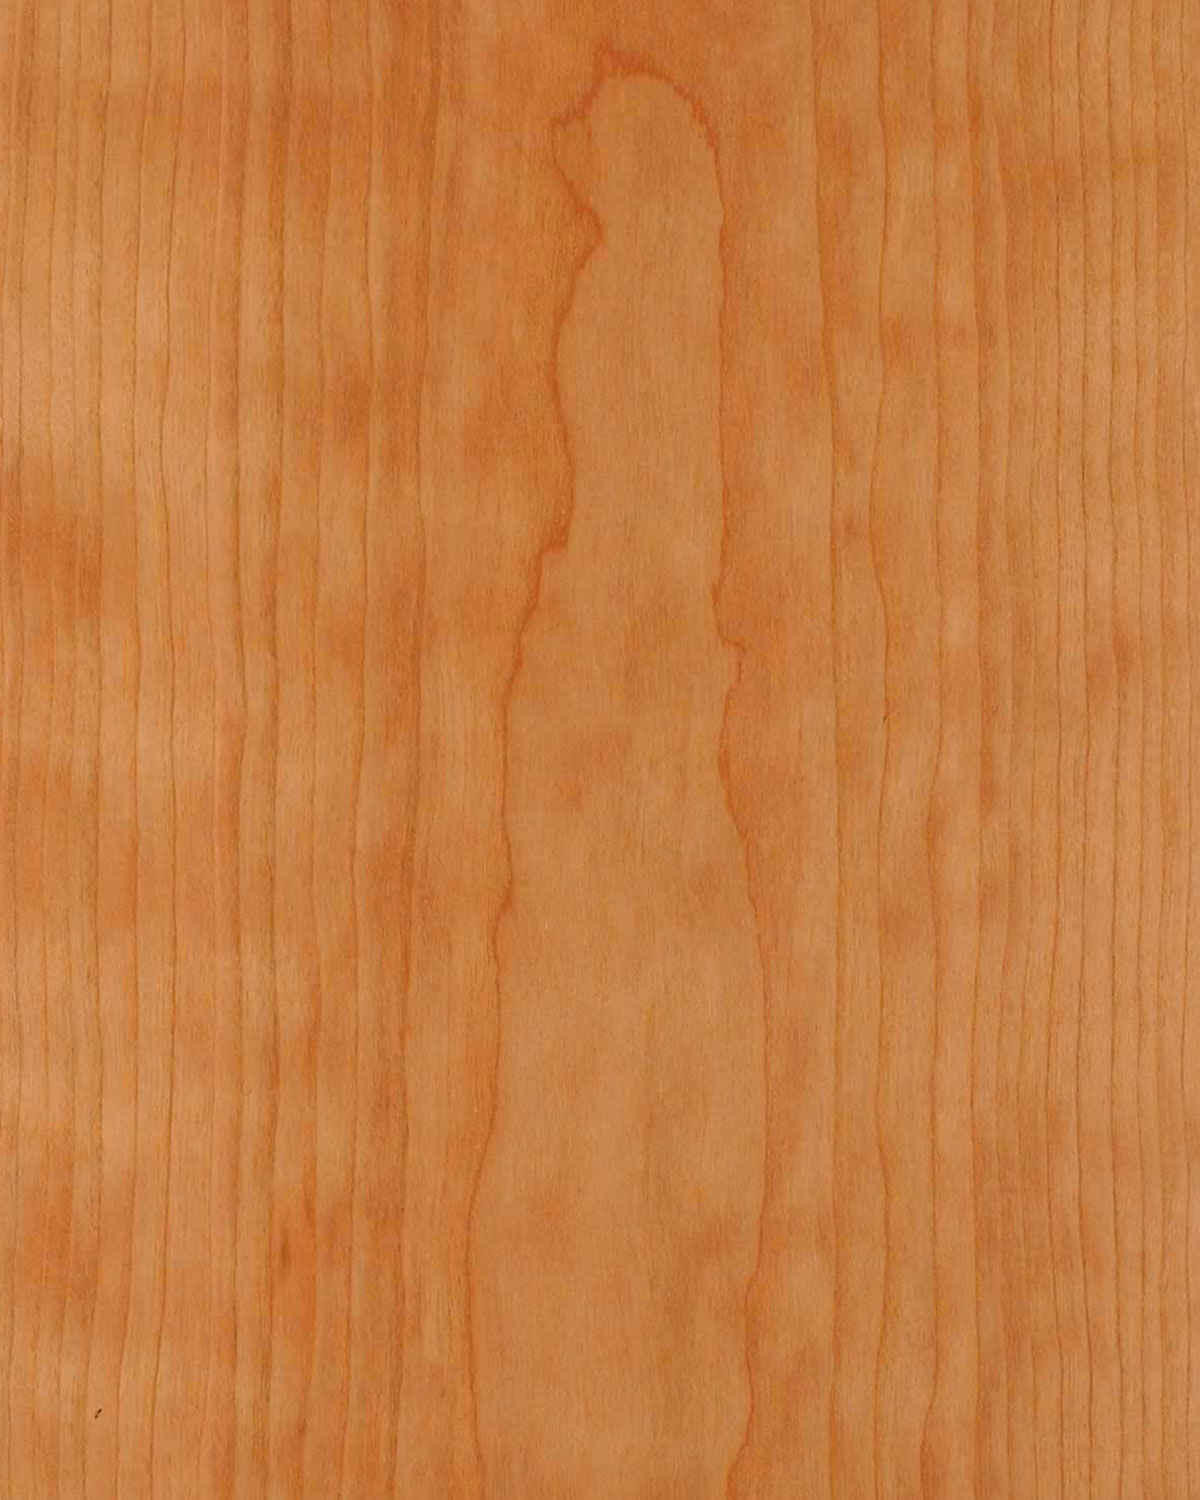 Cherry, American Figured Flat Cut